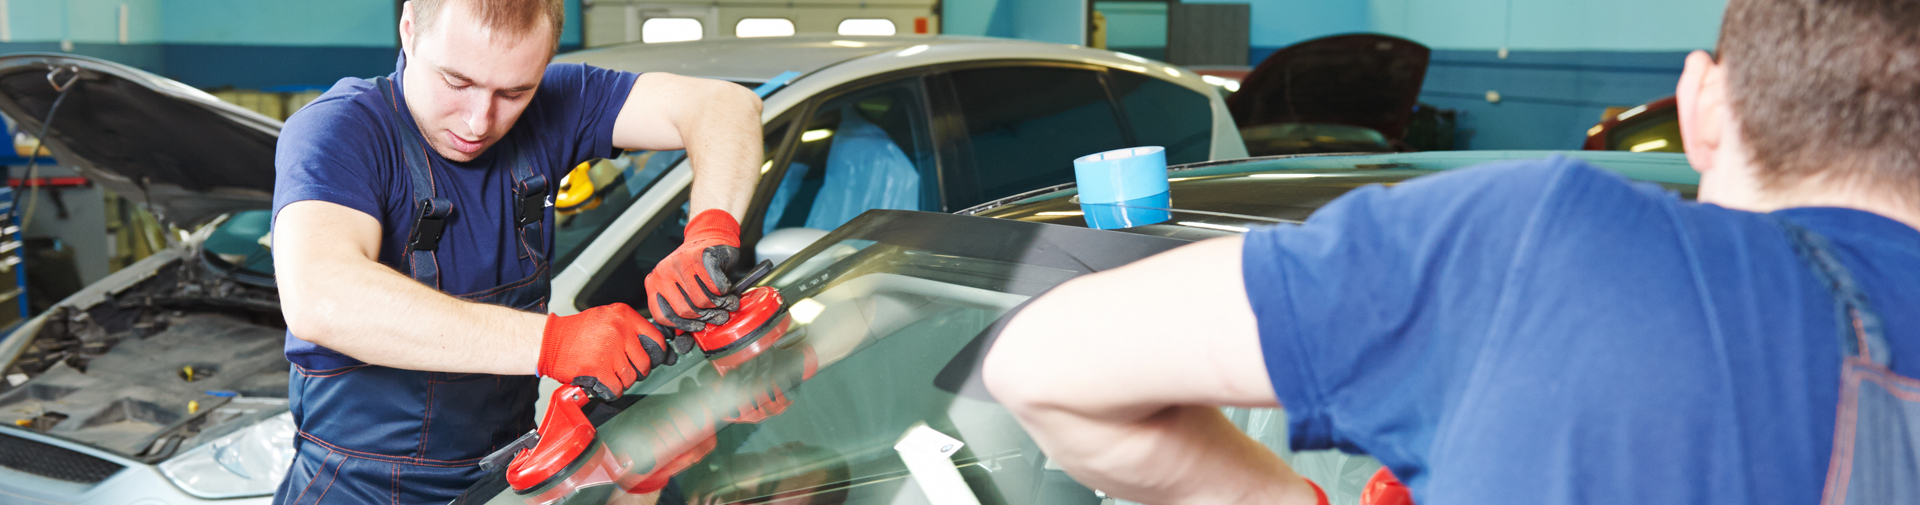 Westminster Auto Glass Techs Repairing Windshield